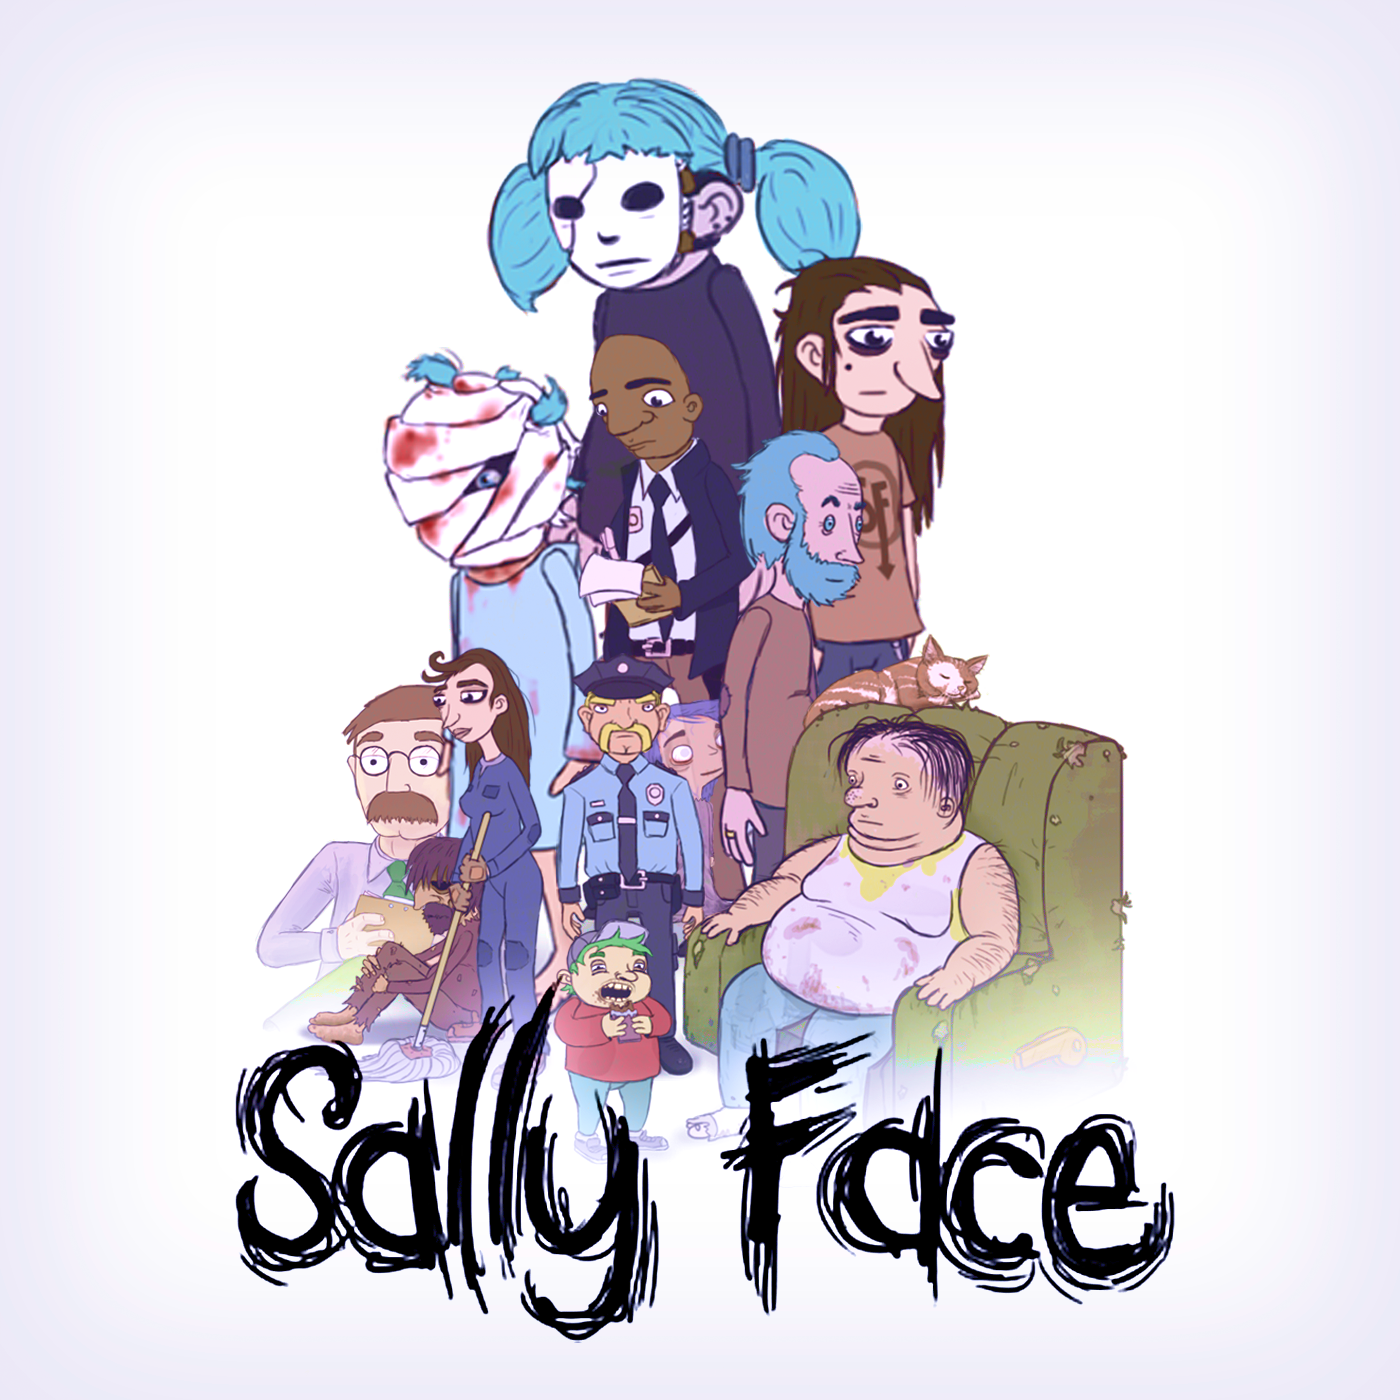 Sally face - complete game download for mac os